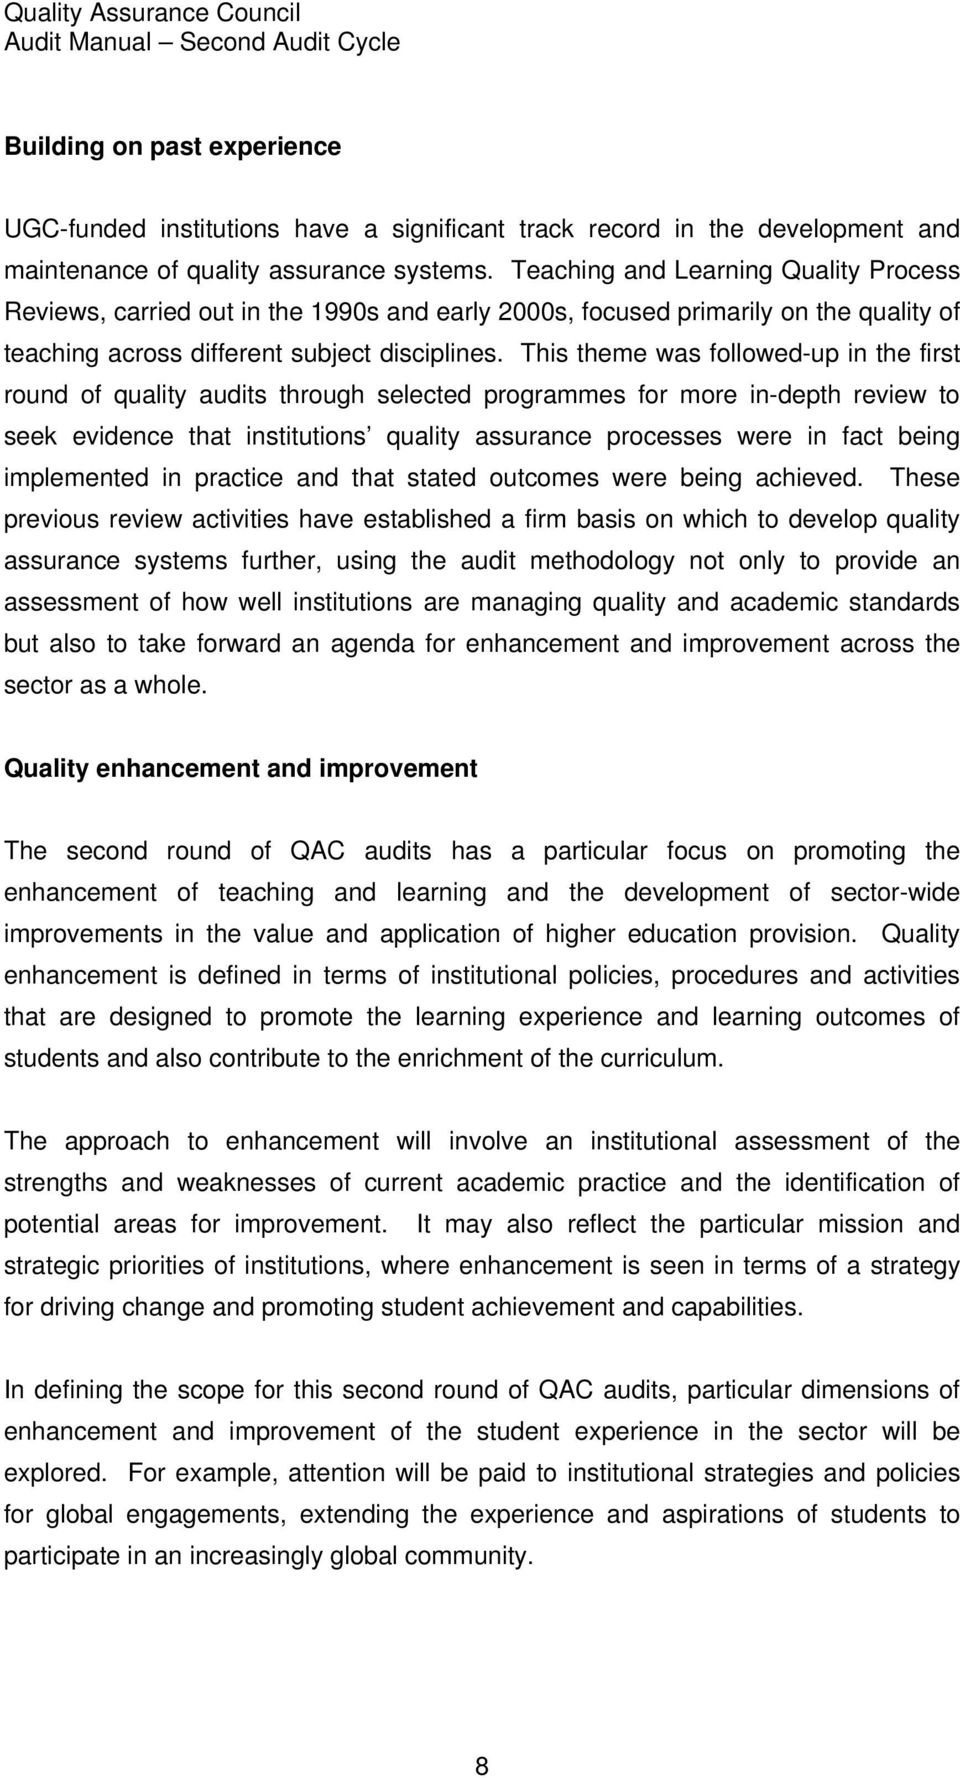 This theme was followed-up in the first round of quality audits through selected programmes for more in-depth review to seek evidence that institutions quality assurance processes were in fact being